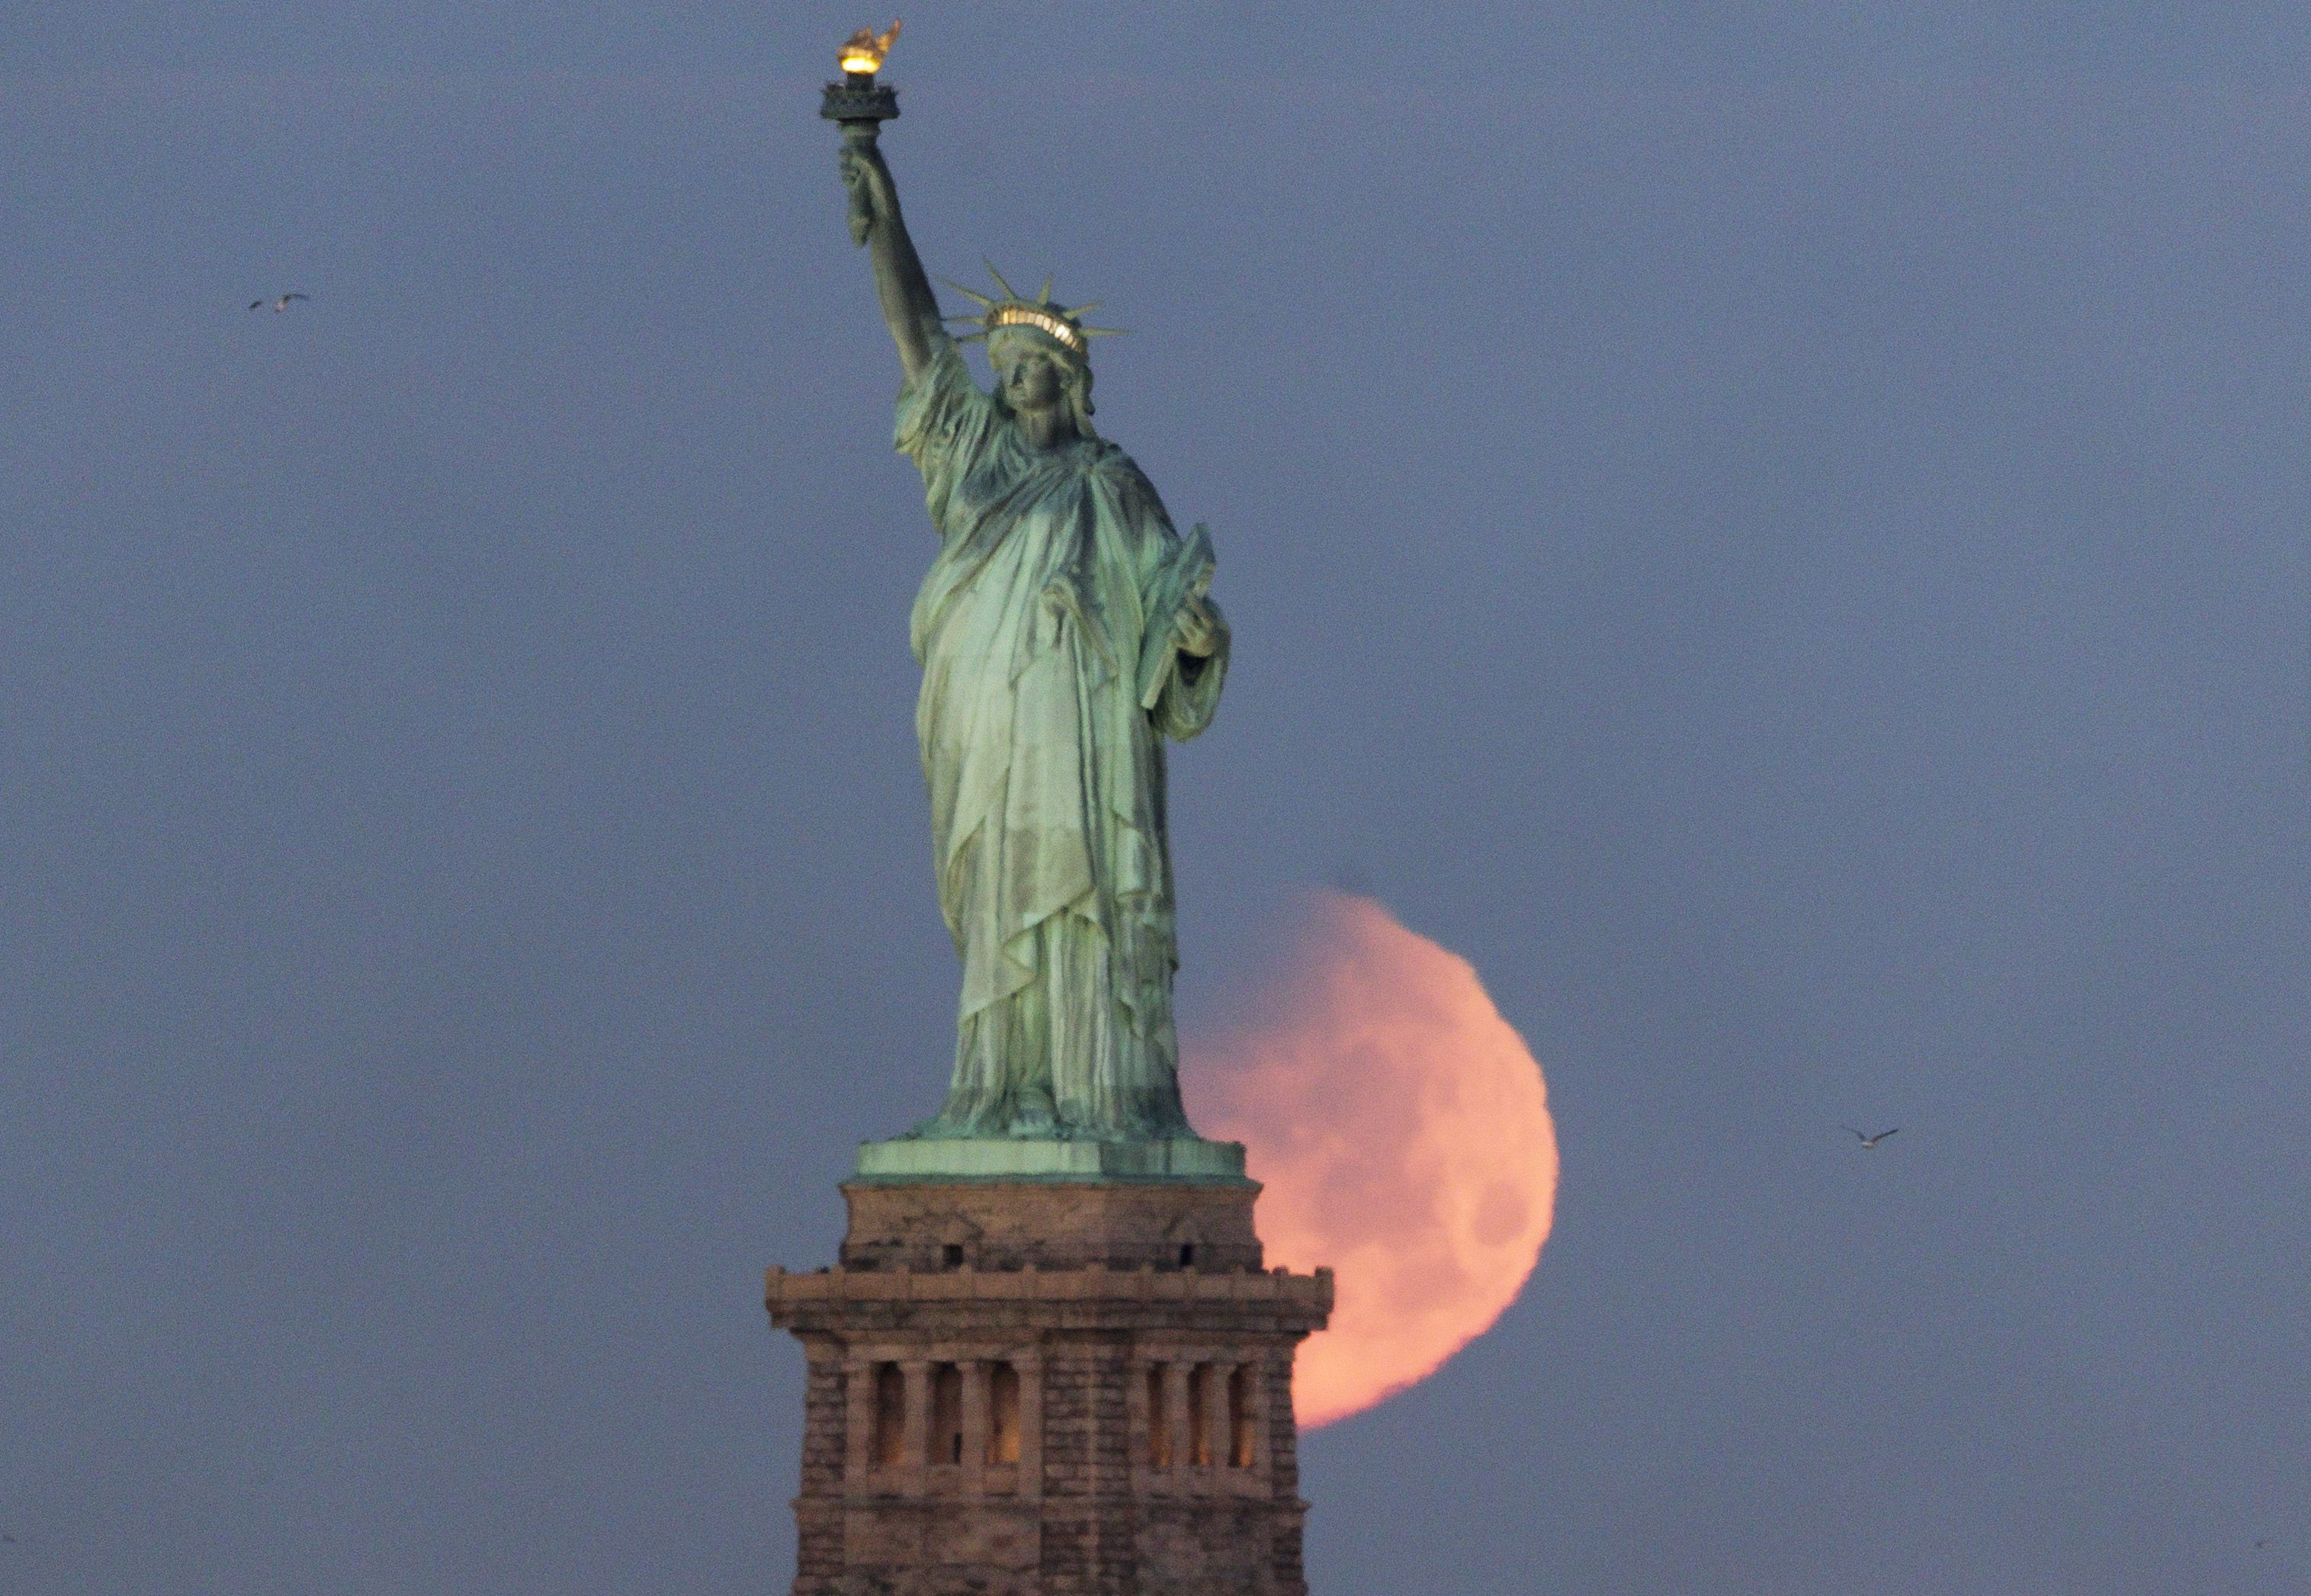 The moon sets behind the Statue of Liberty in New York on Jan. 31, 2018.